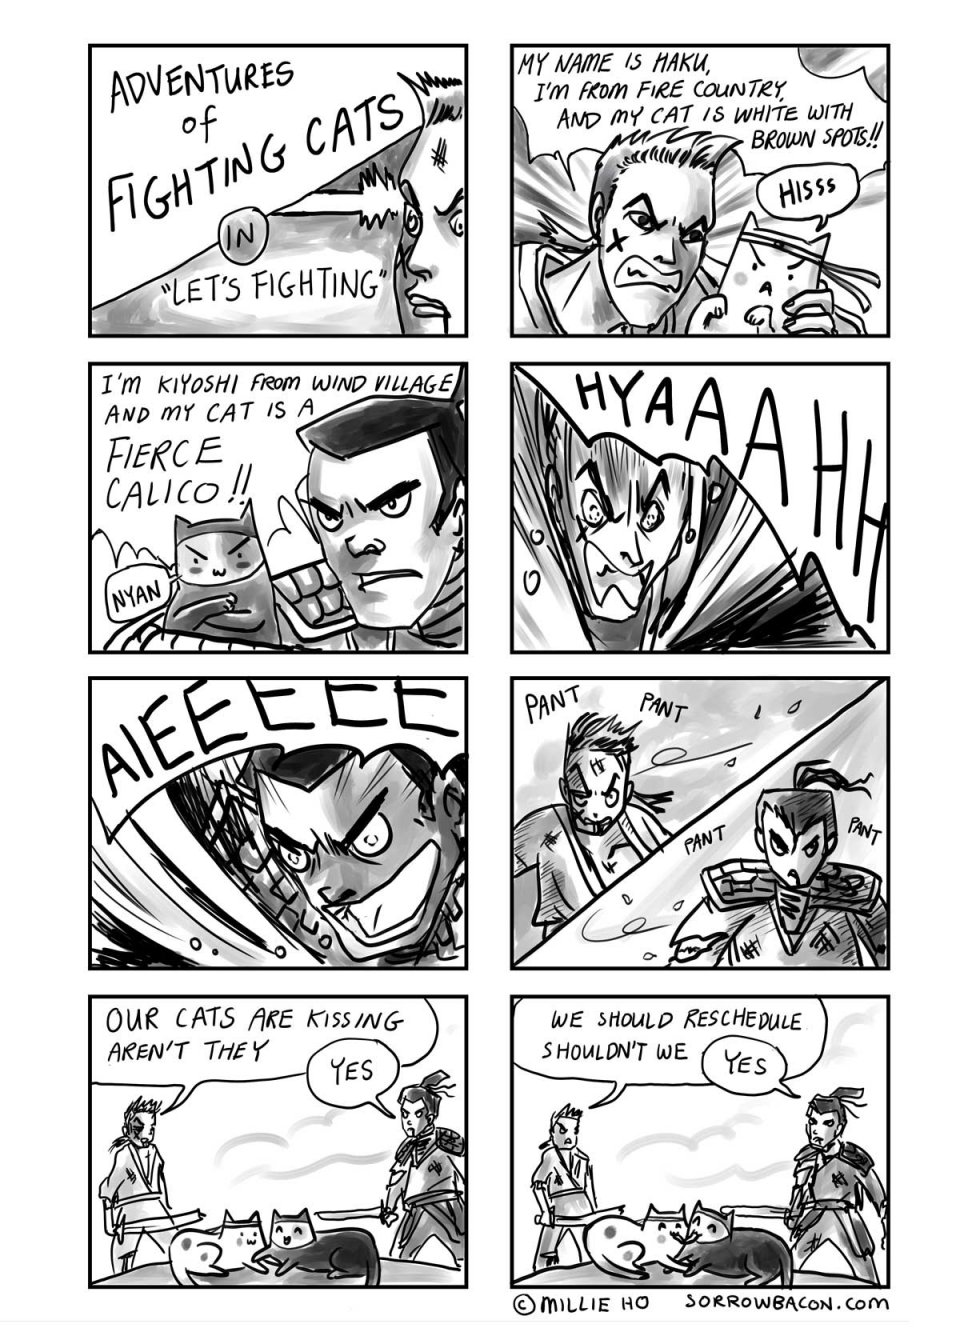 Let's Fighting Cats sorrowbacon comic